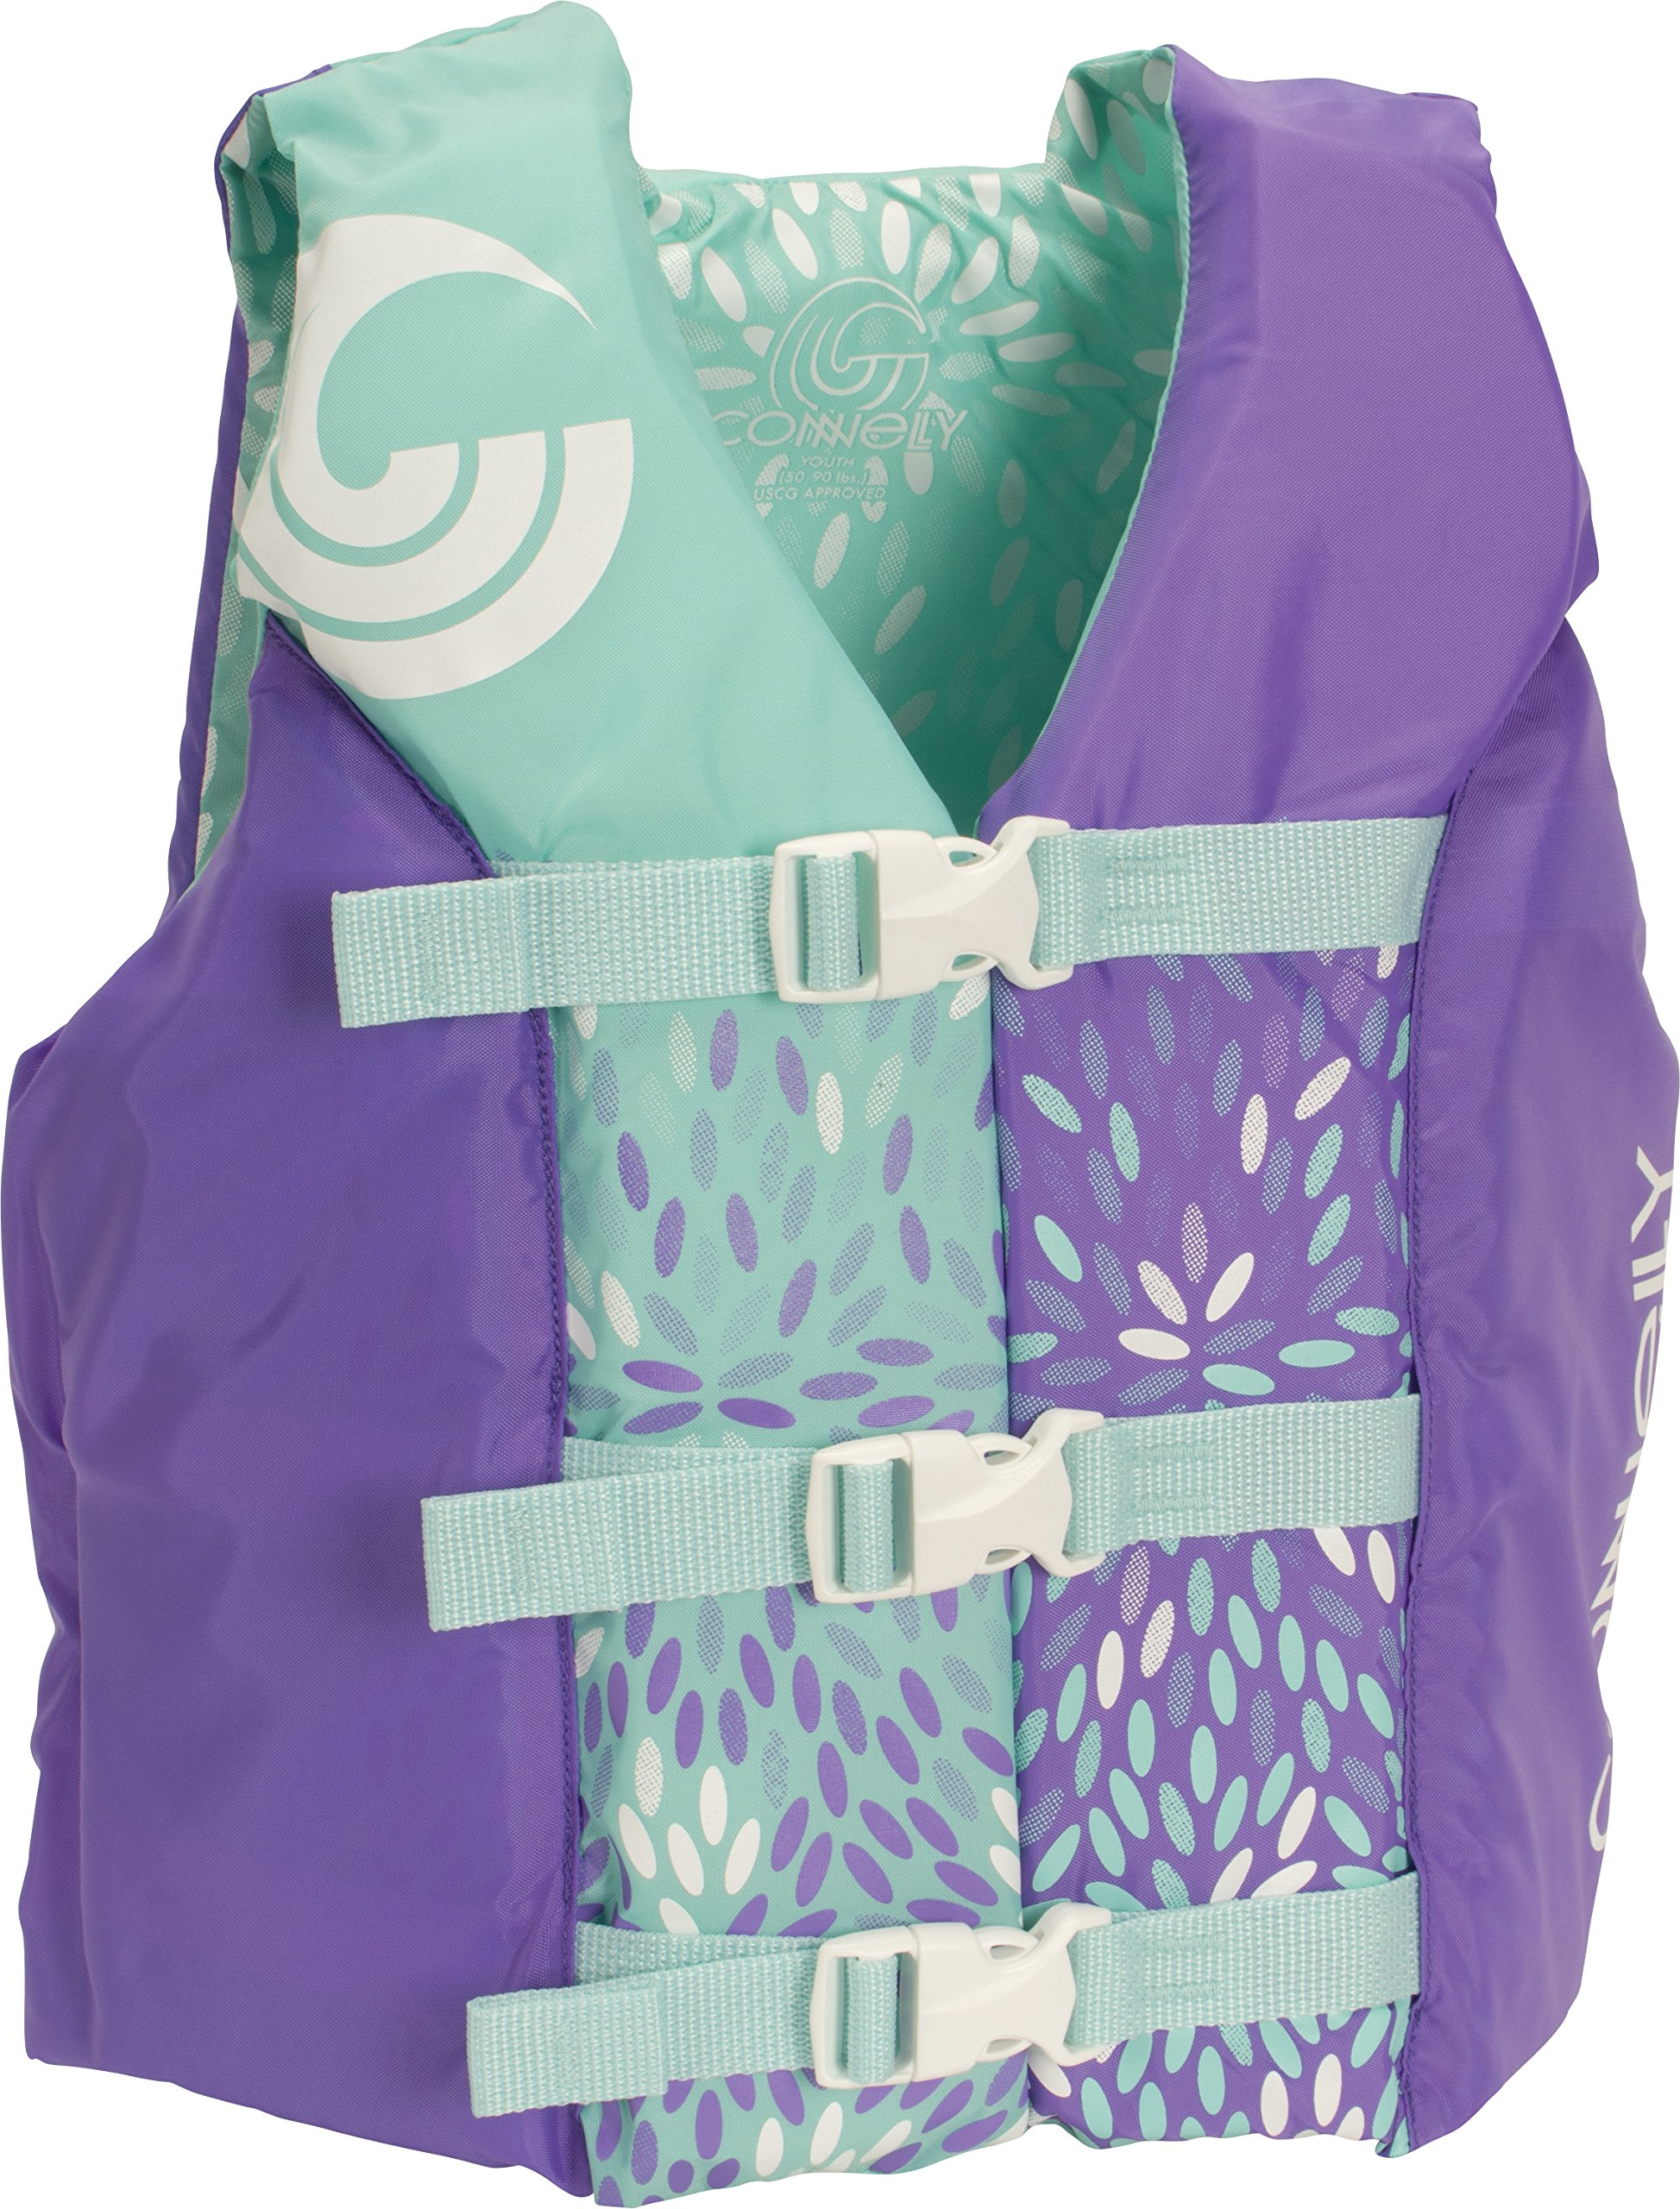 CWB Connelly Youth Nylon Vest, 24''-29'' Chest; 50-90Lbs, Girl Tunnel